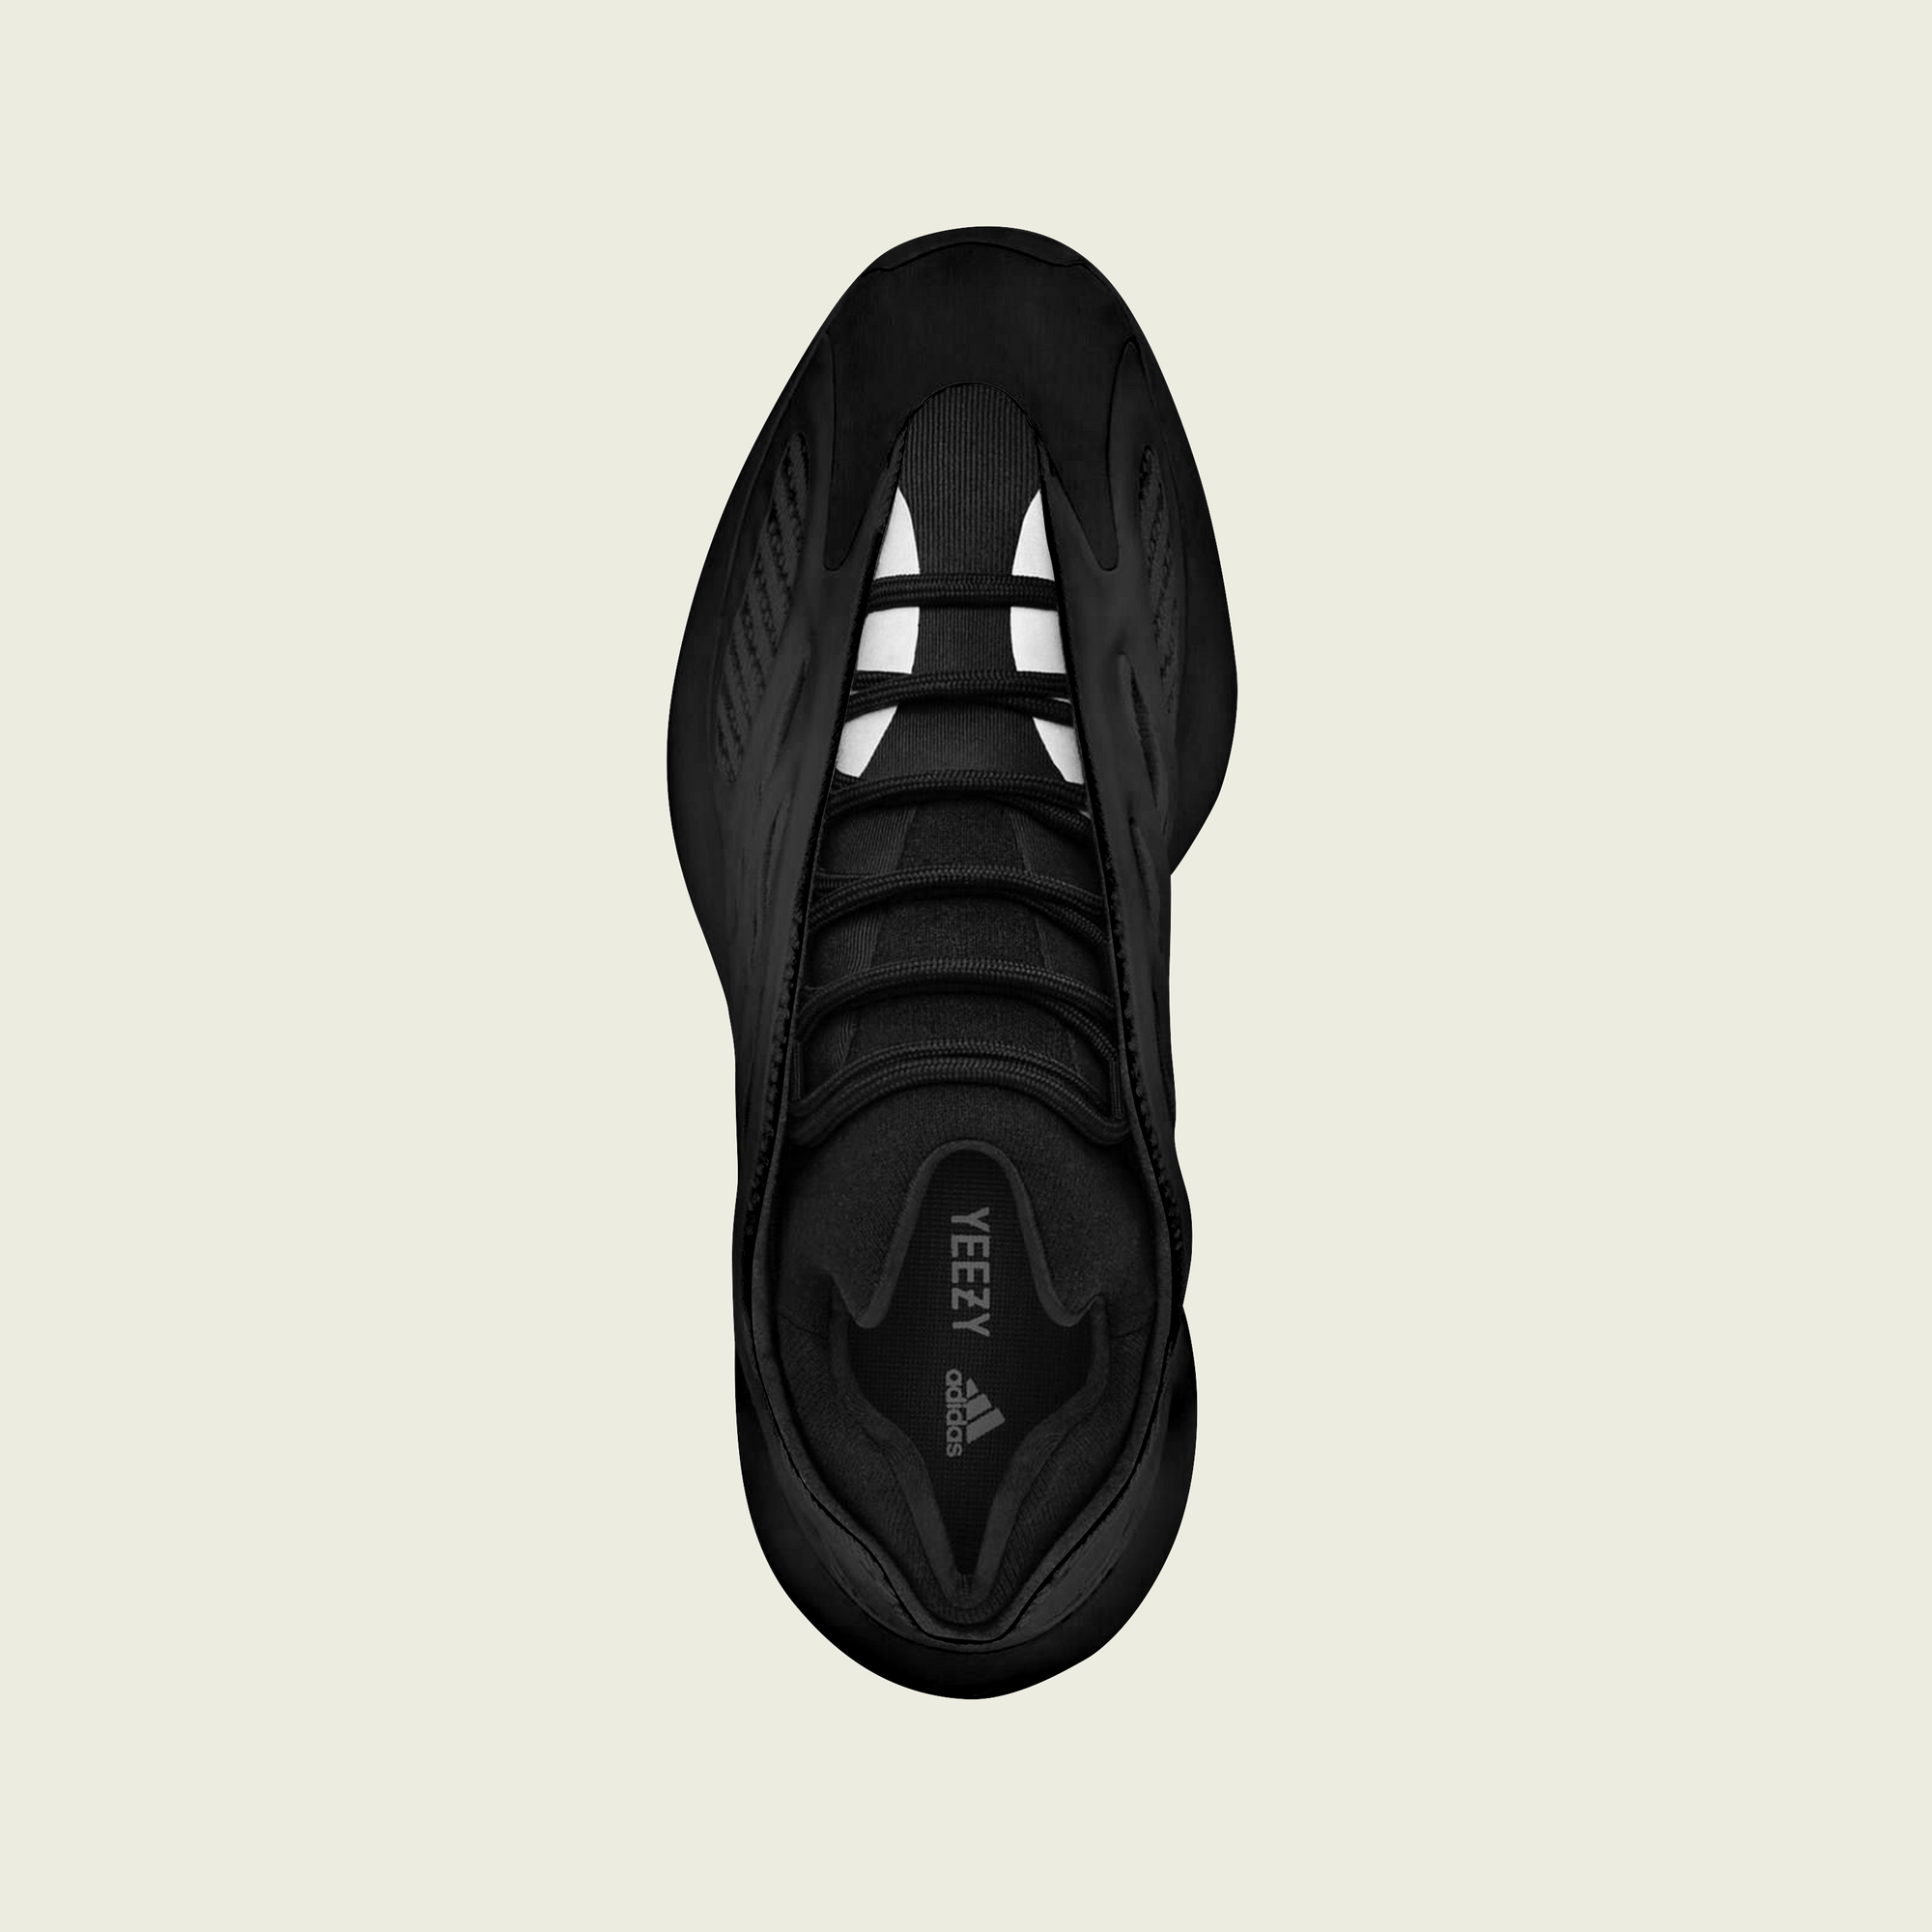 adidas yeezy 700 v3 alvah release time